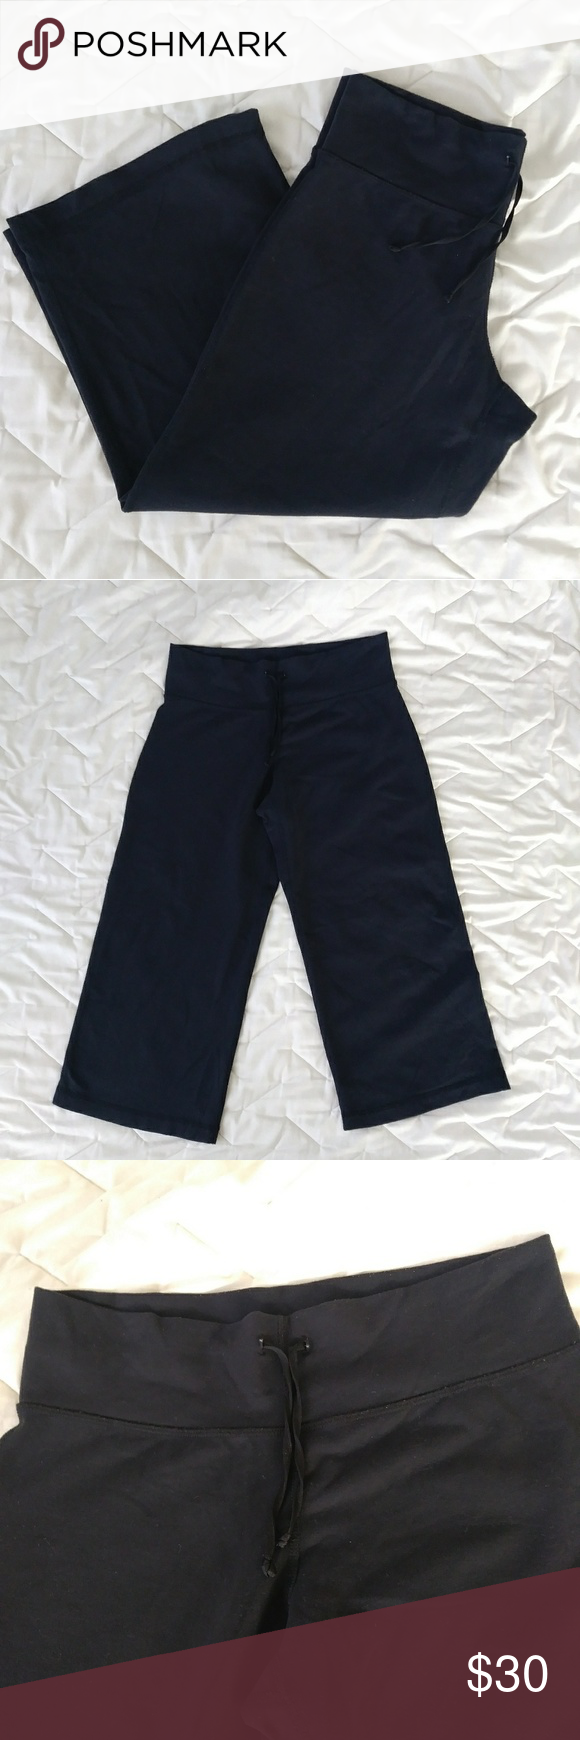 681e003e7 Lululemon gaucho cropped yoga pants capris Very good condition! lululemon  athletica Pants Wide Leg